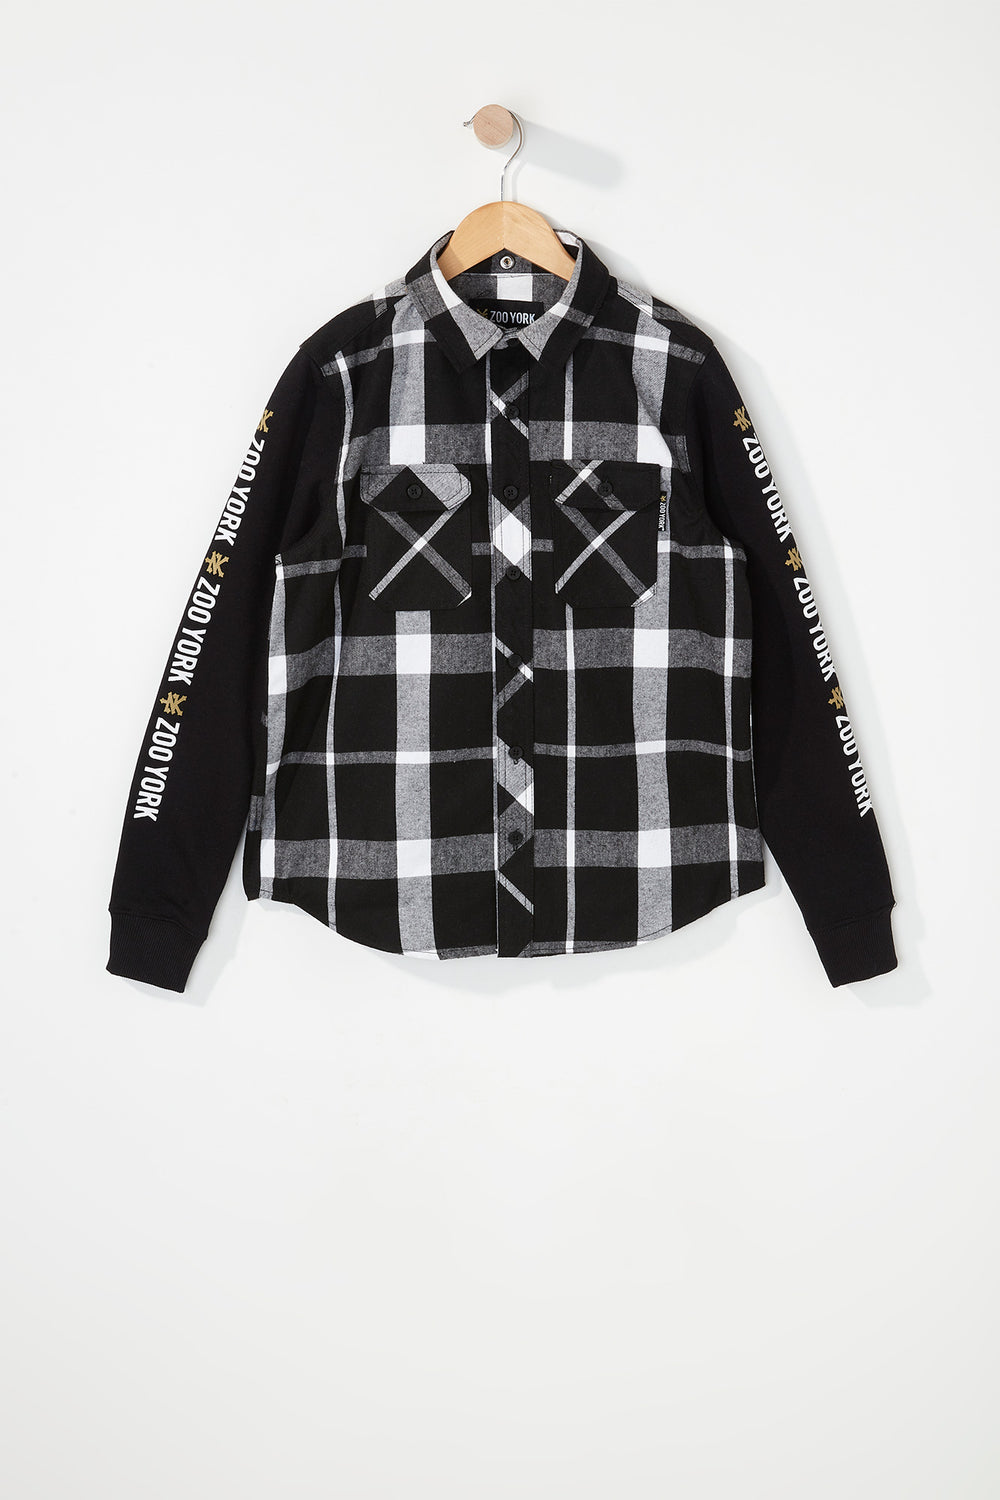 Zoo York Boys Hooded Flannel Button-Up Shirt White